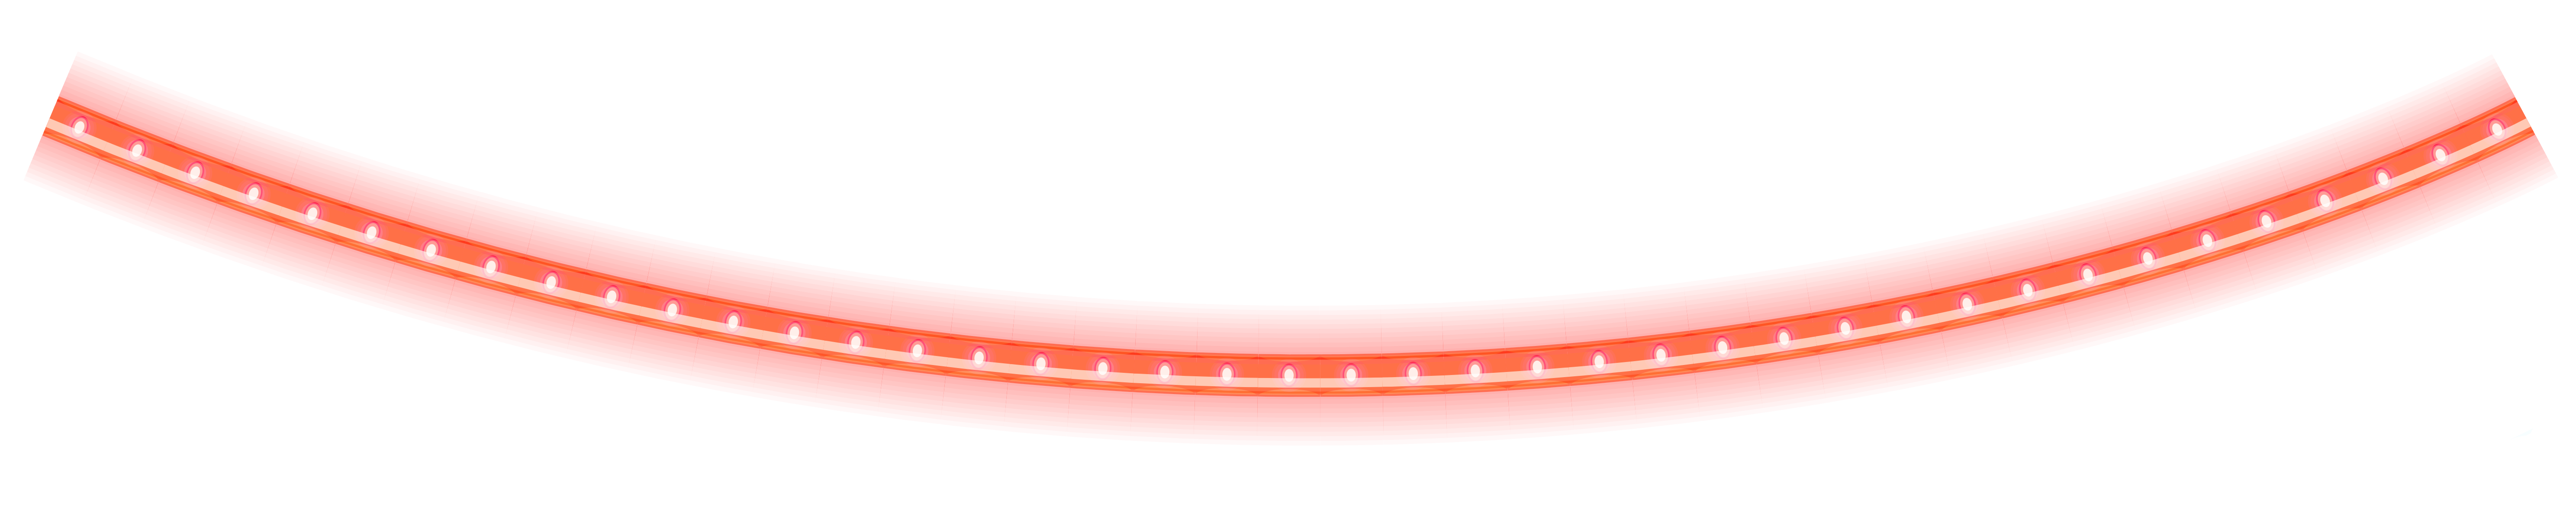 Glowing line png. Red christmas tube clipart